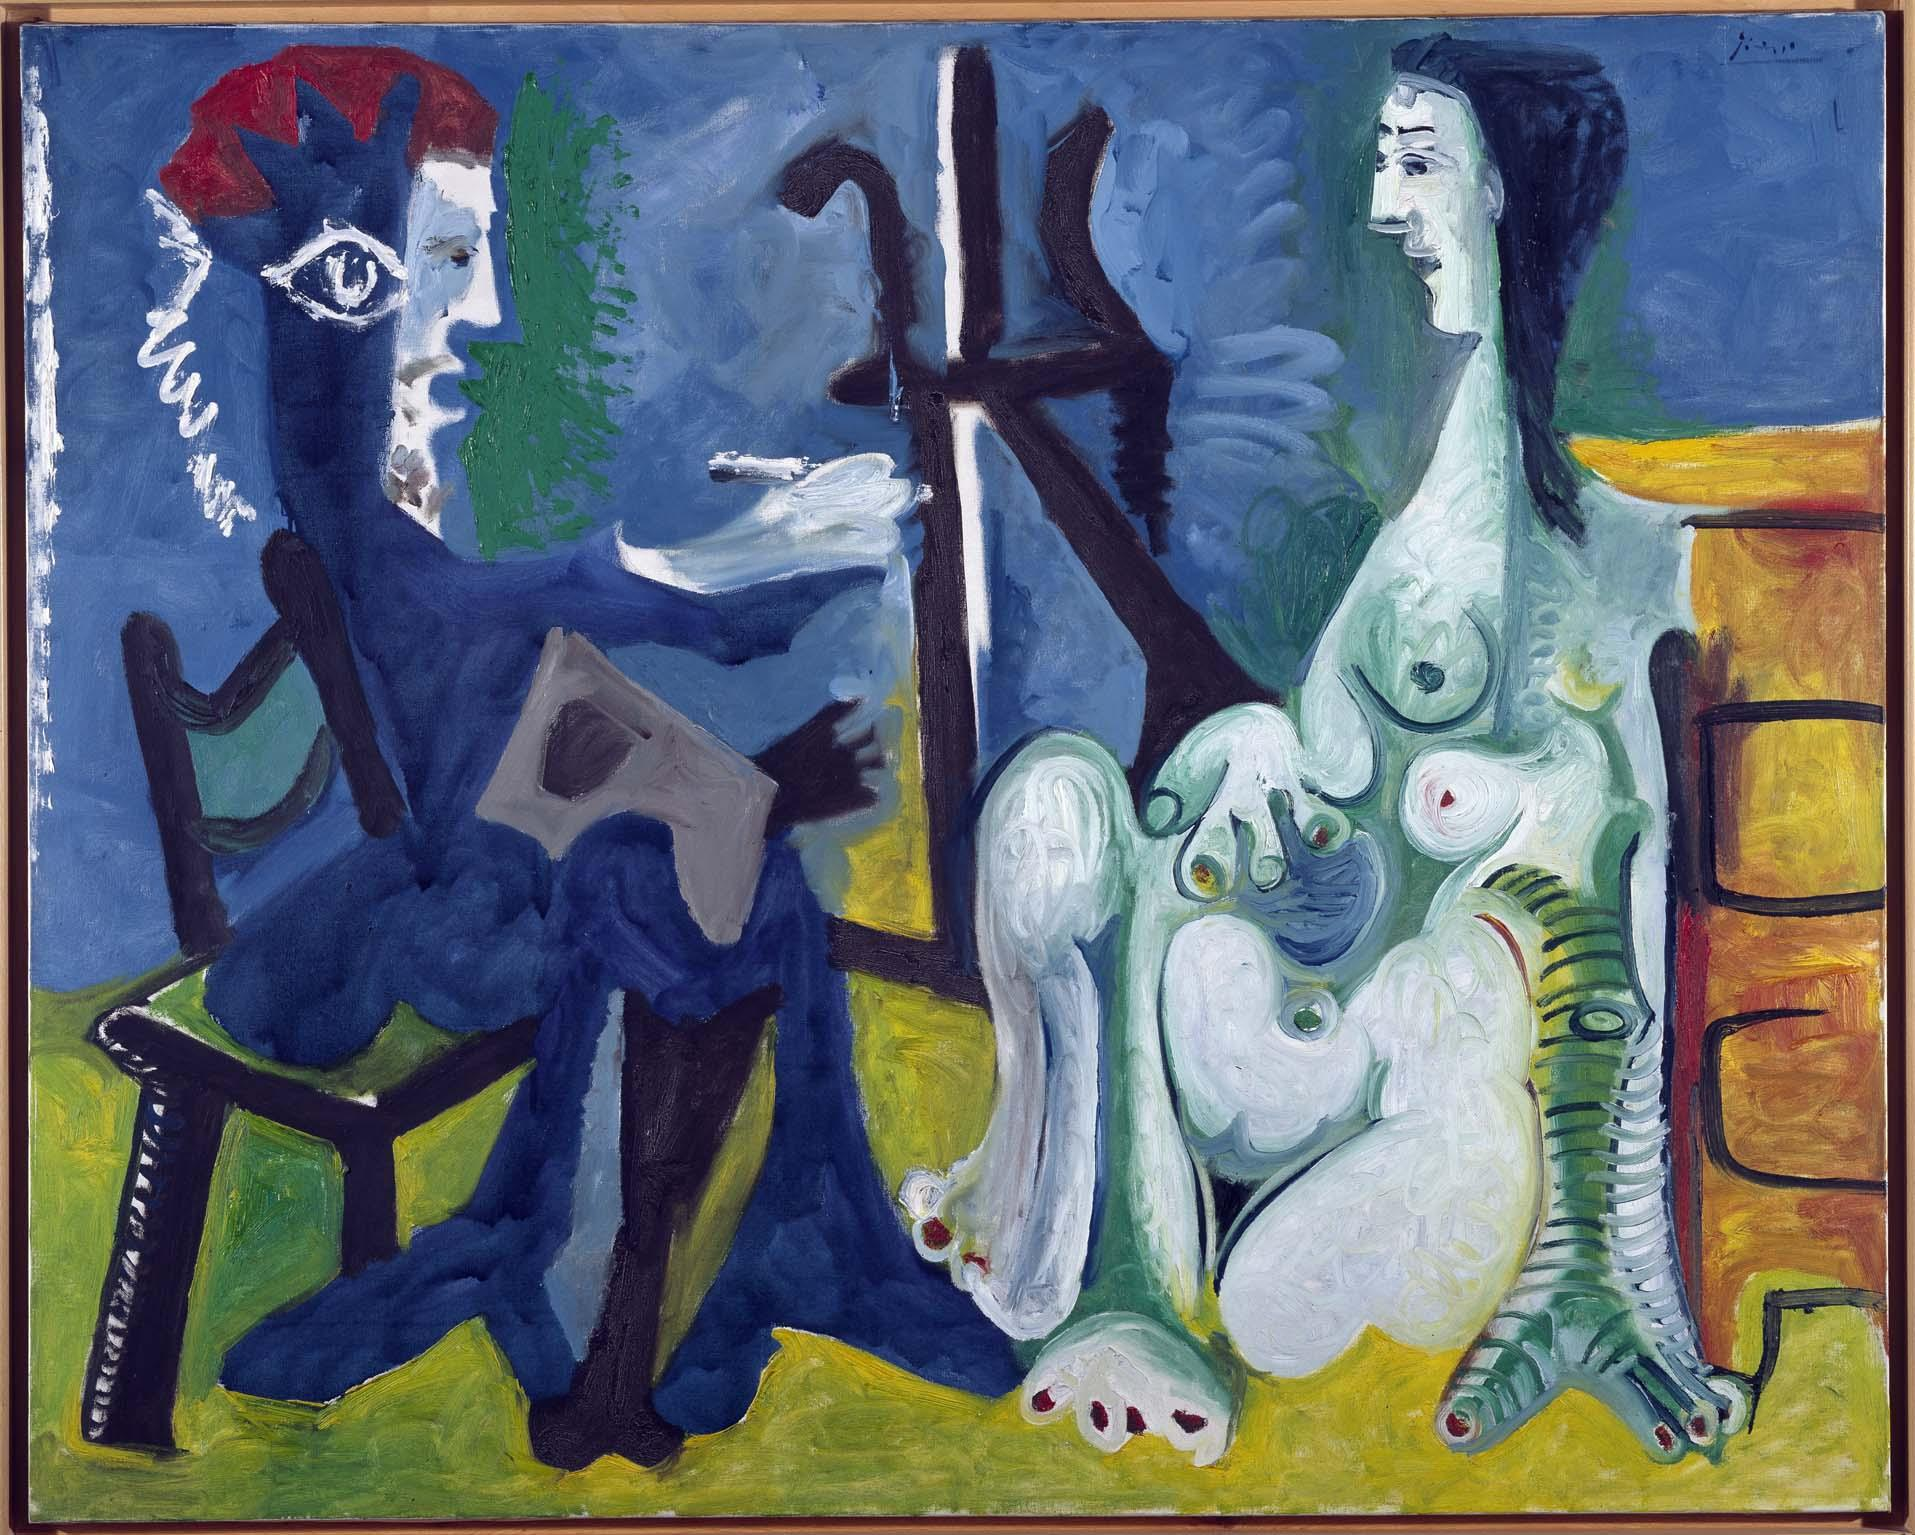 a comparison of picasso and perugino paintings of the female Pablo picasso paintings self portrait - by pablo picasso  seated woman in a garden - by pablo picasso: lying female nude - by pablo picasso: portrait of daniel.